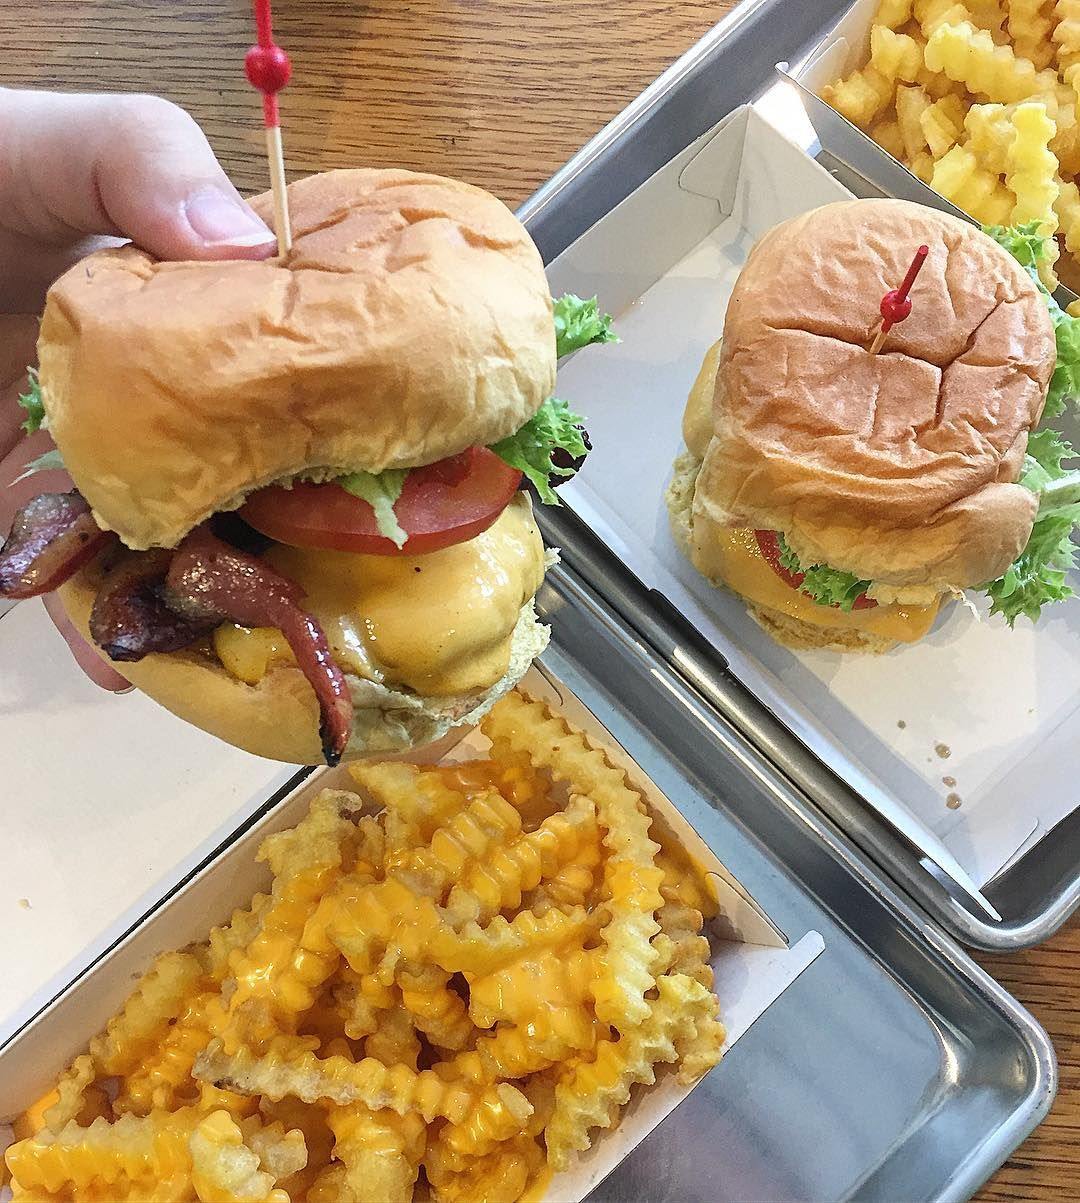 Just discovered that @jackssydney has opened up at @westfieldmiranda  Having the cheese burger and I'm a very happy girl!  Not too big or sloppy